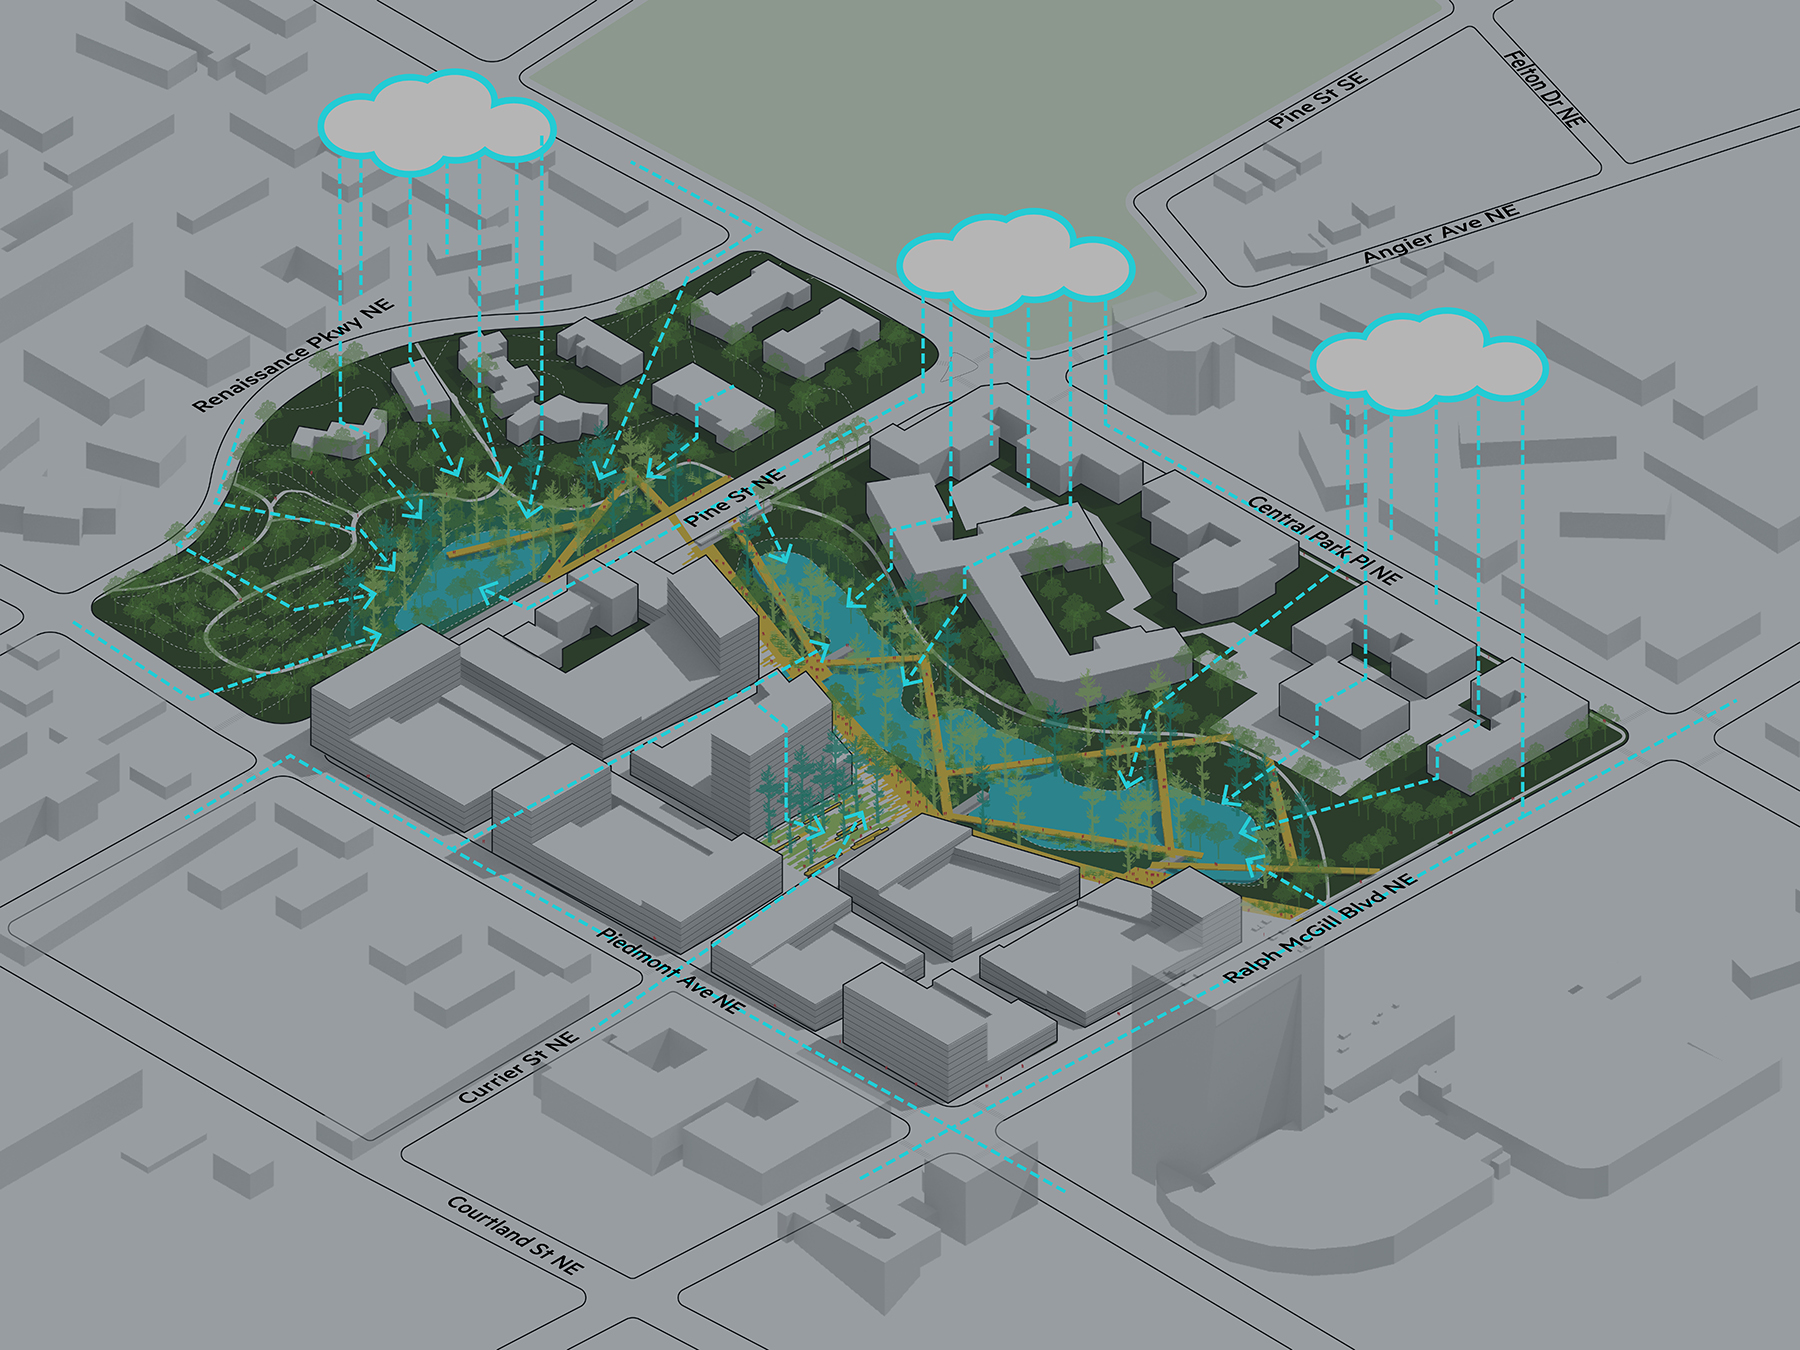 Atlanta_plan_Civic Center Axon-Proposed-Storm_20171013-01.jpg